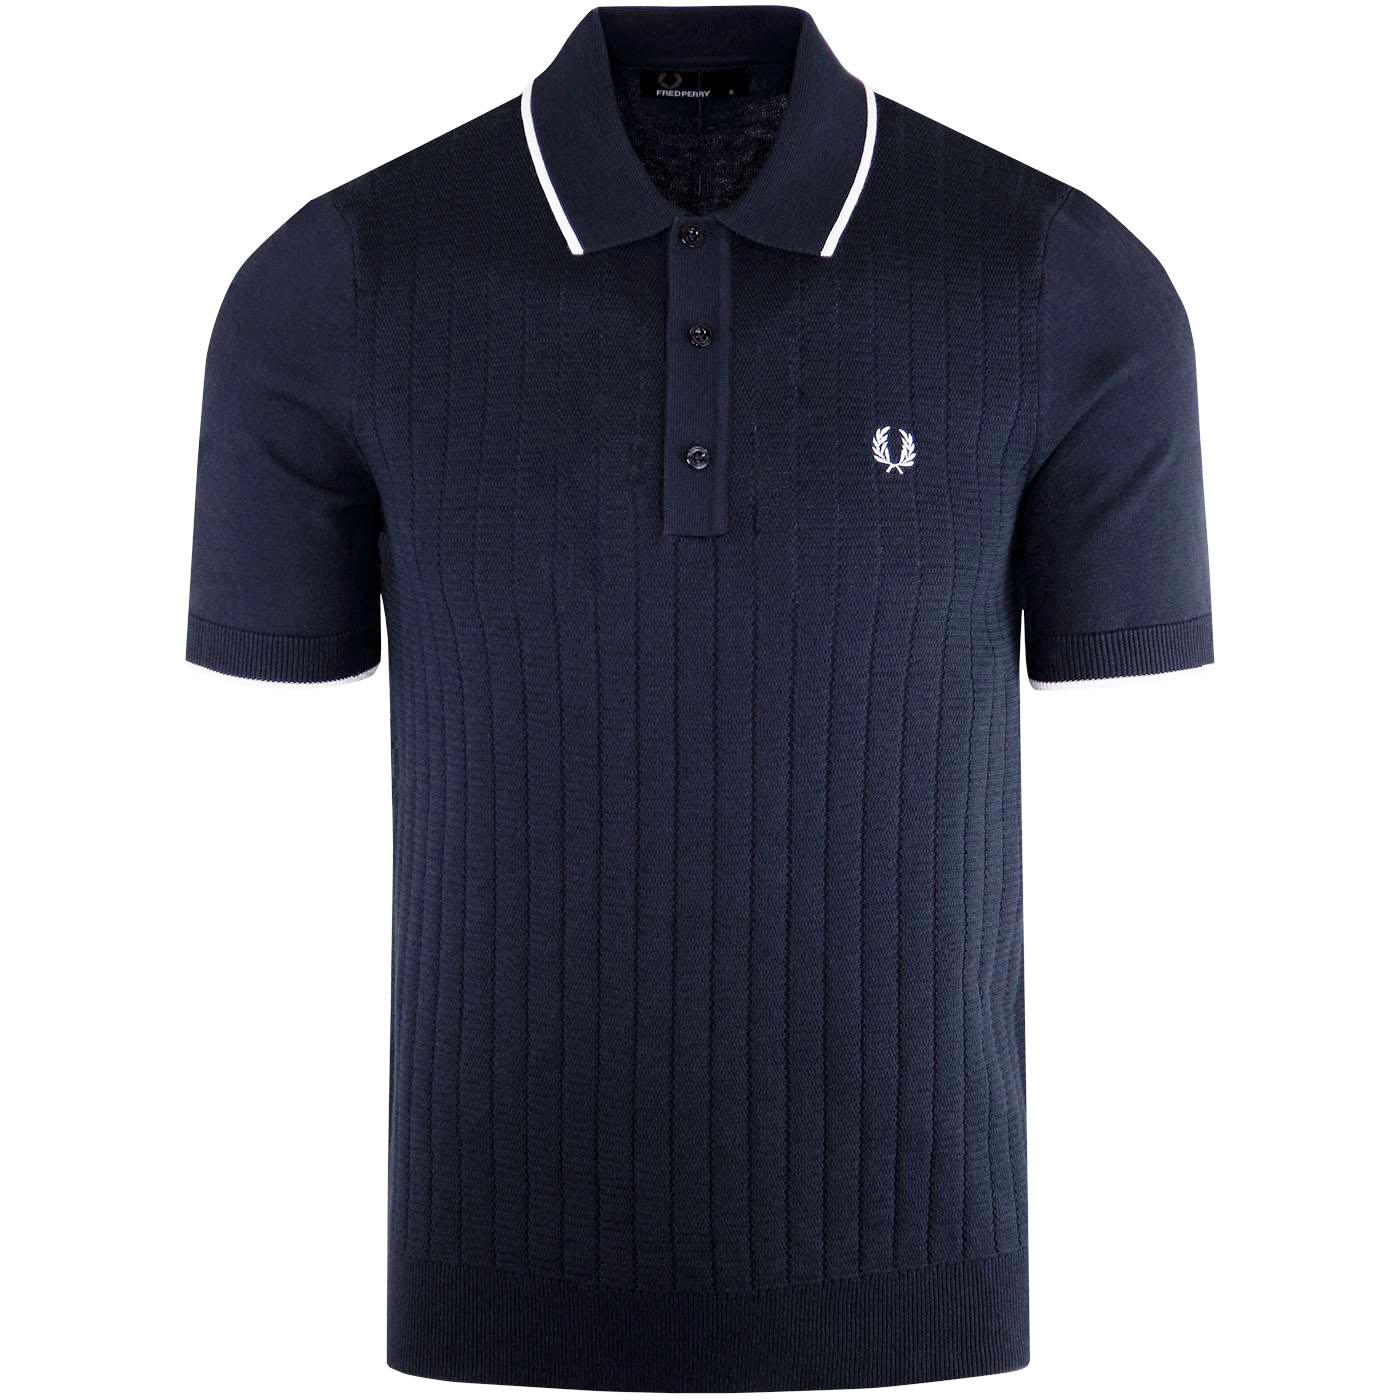 FRED PERRY Mod Texture Front Knit Polo Shirt NAVY